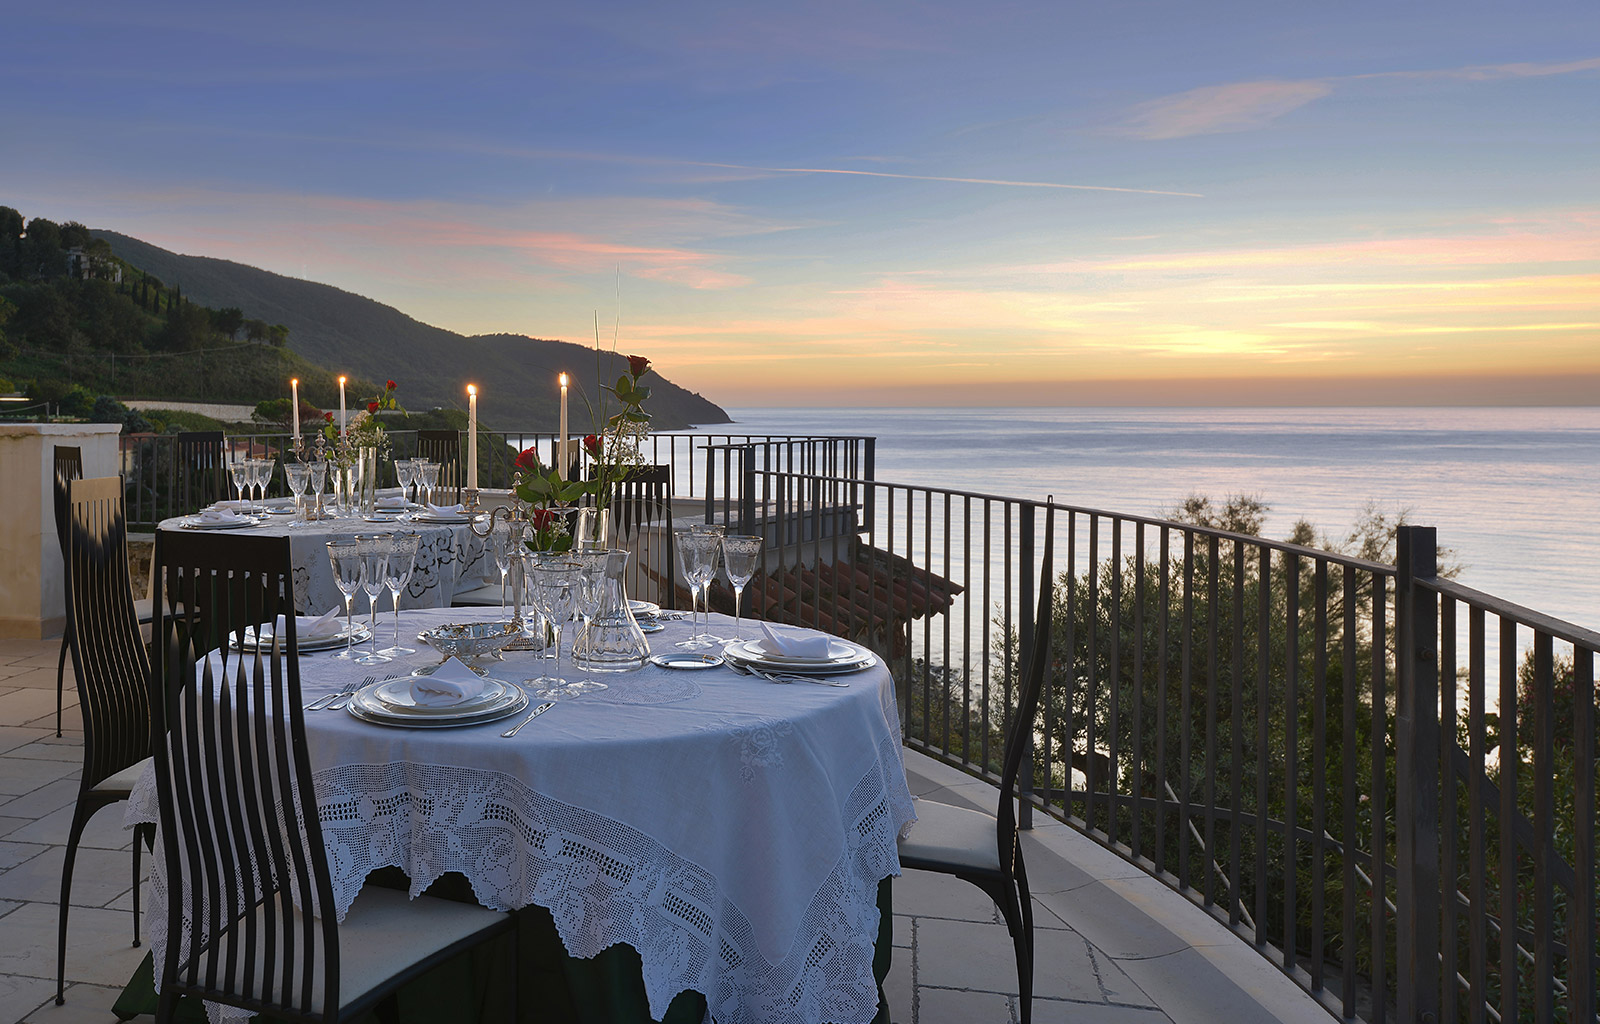 Terrace by the sea: | Enjoy Your Stay